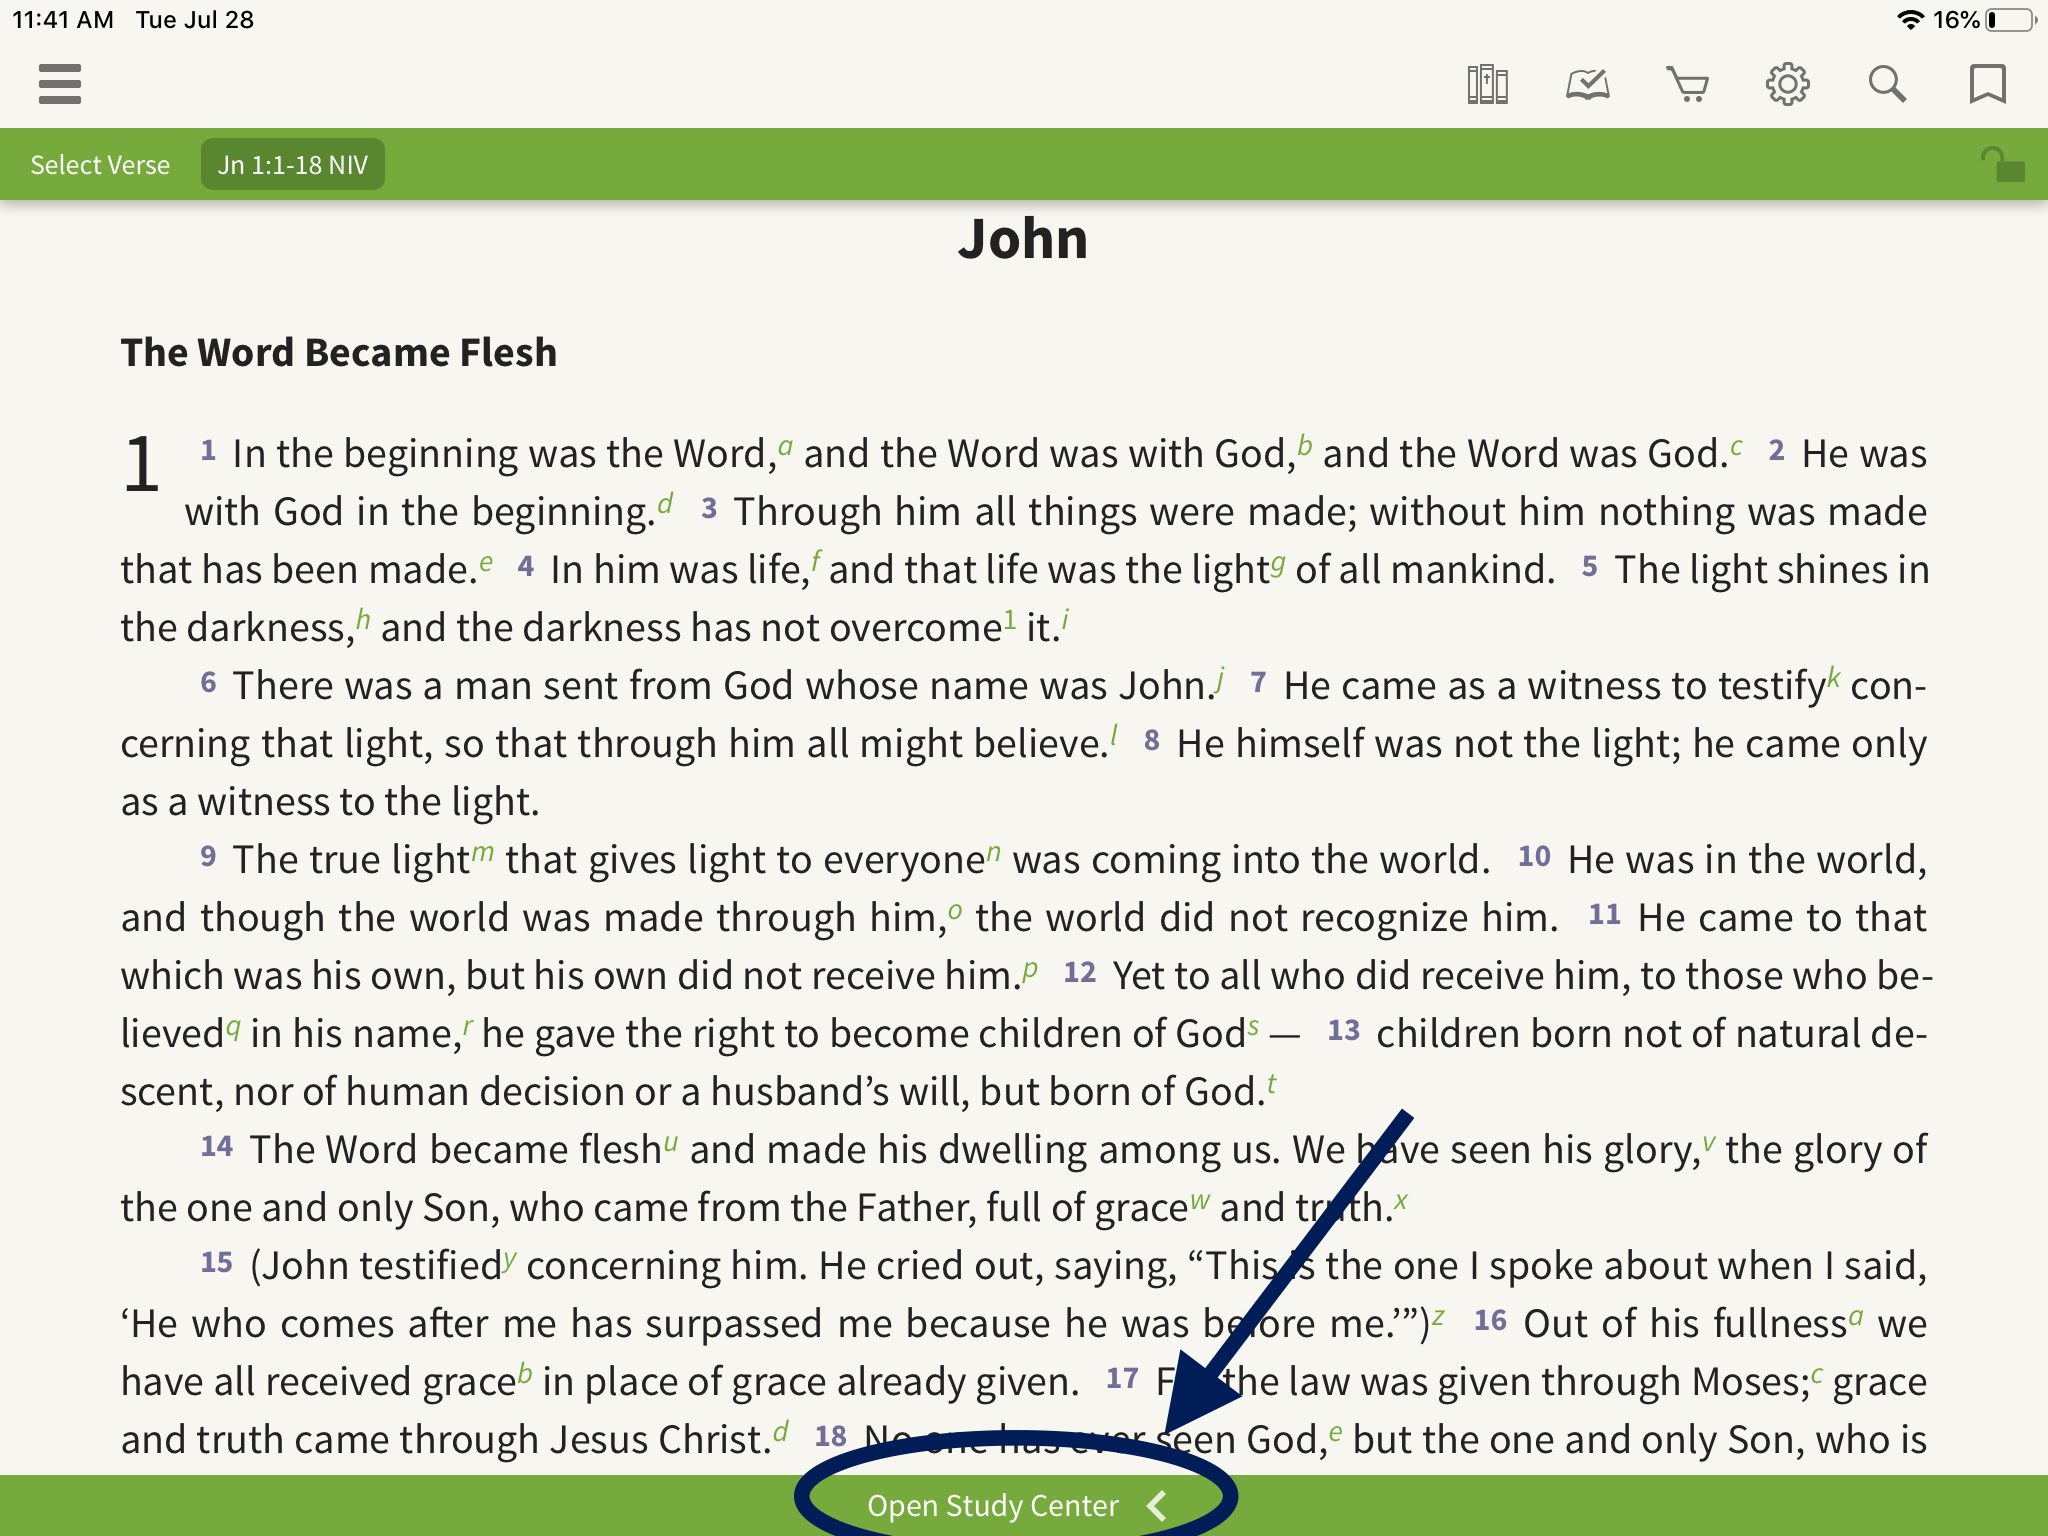 how to open the study center in the olive tree bible app